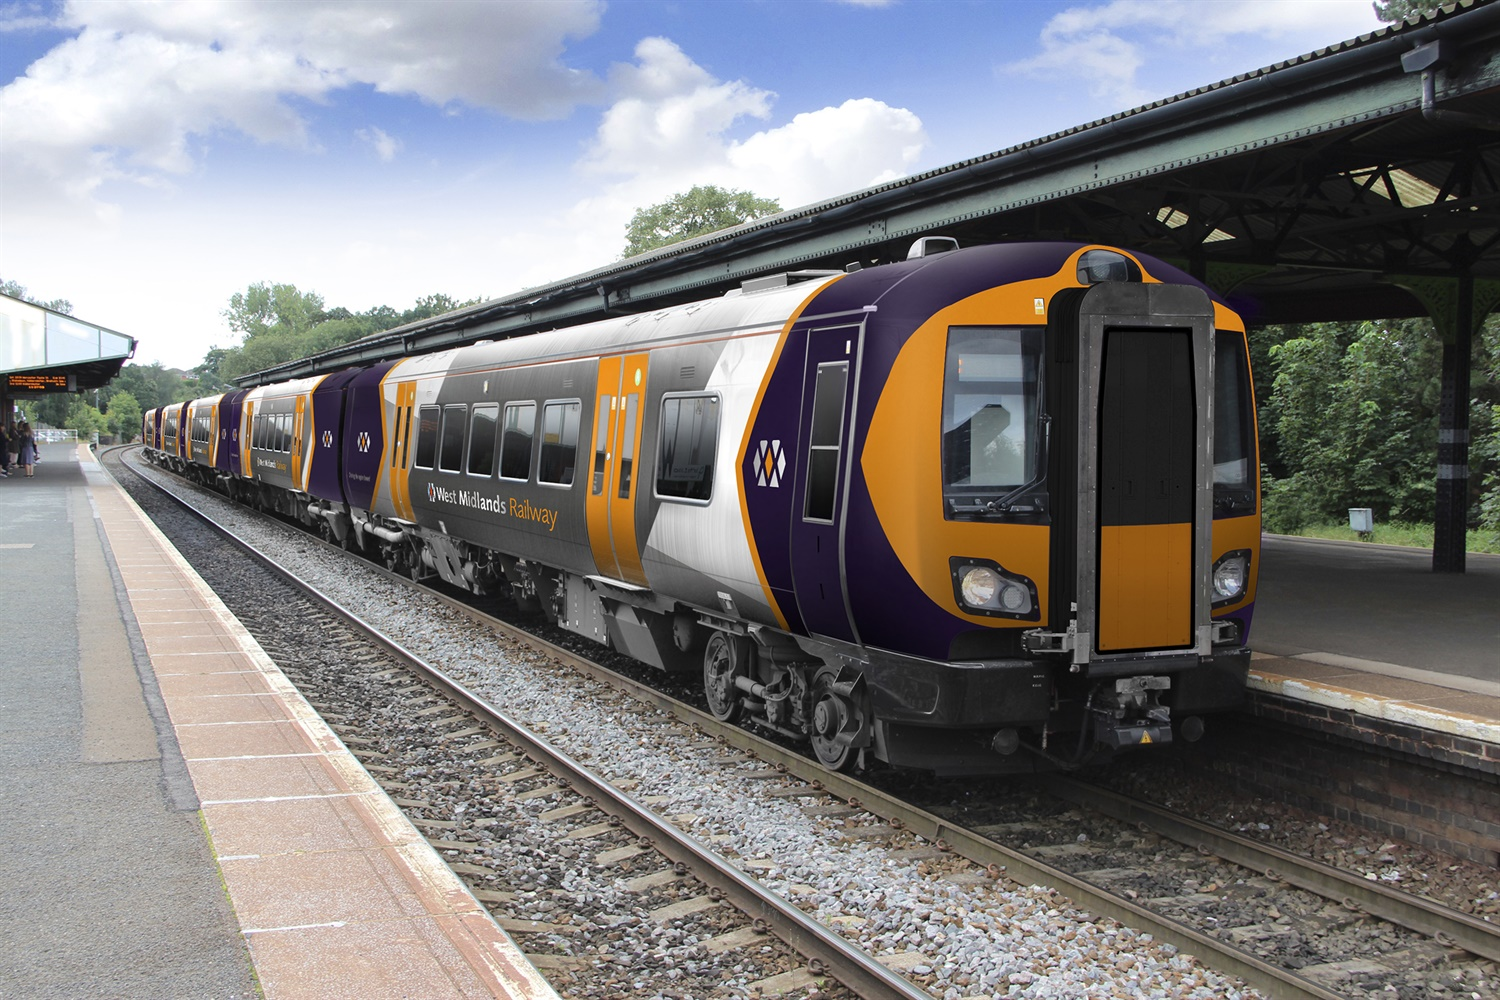 New West Midlands Trains franchise will undoubtedly benefit passengers, says Lichfield MP